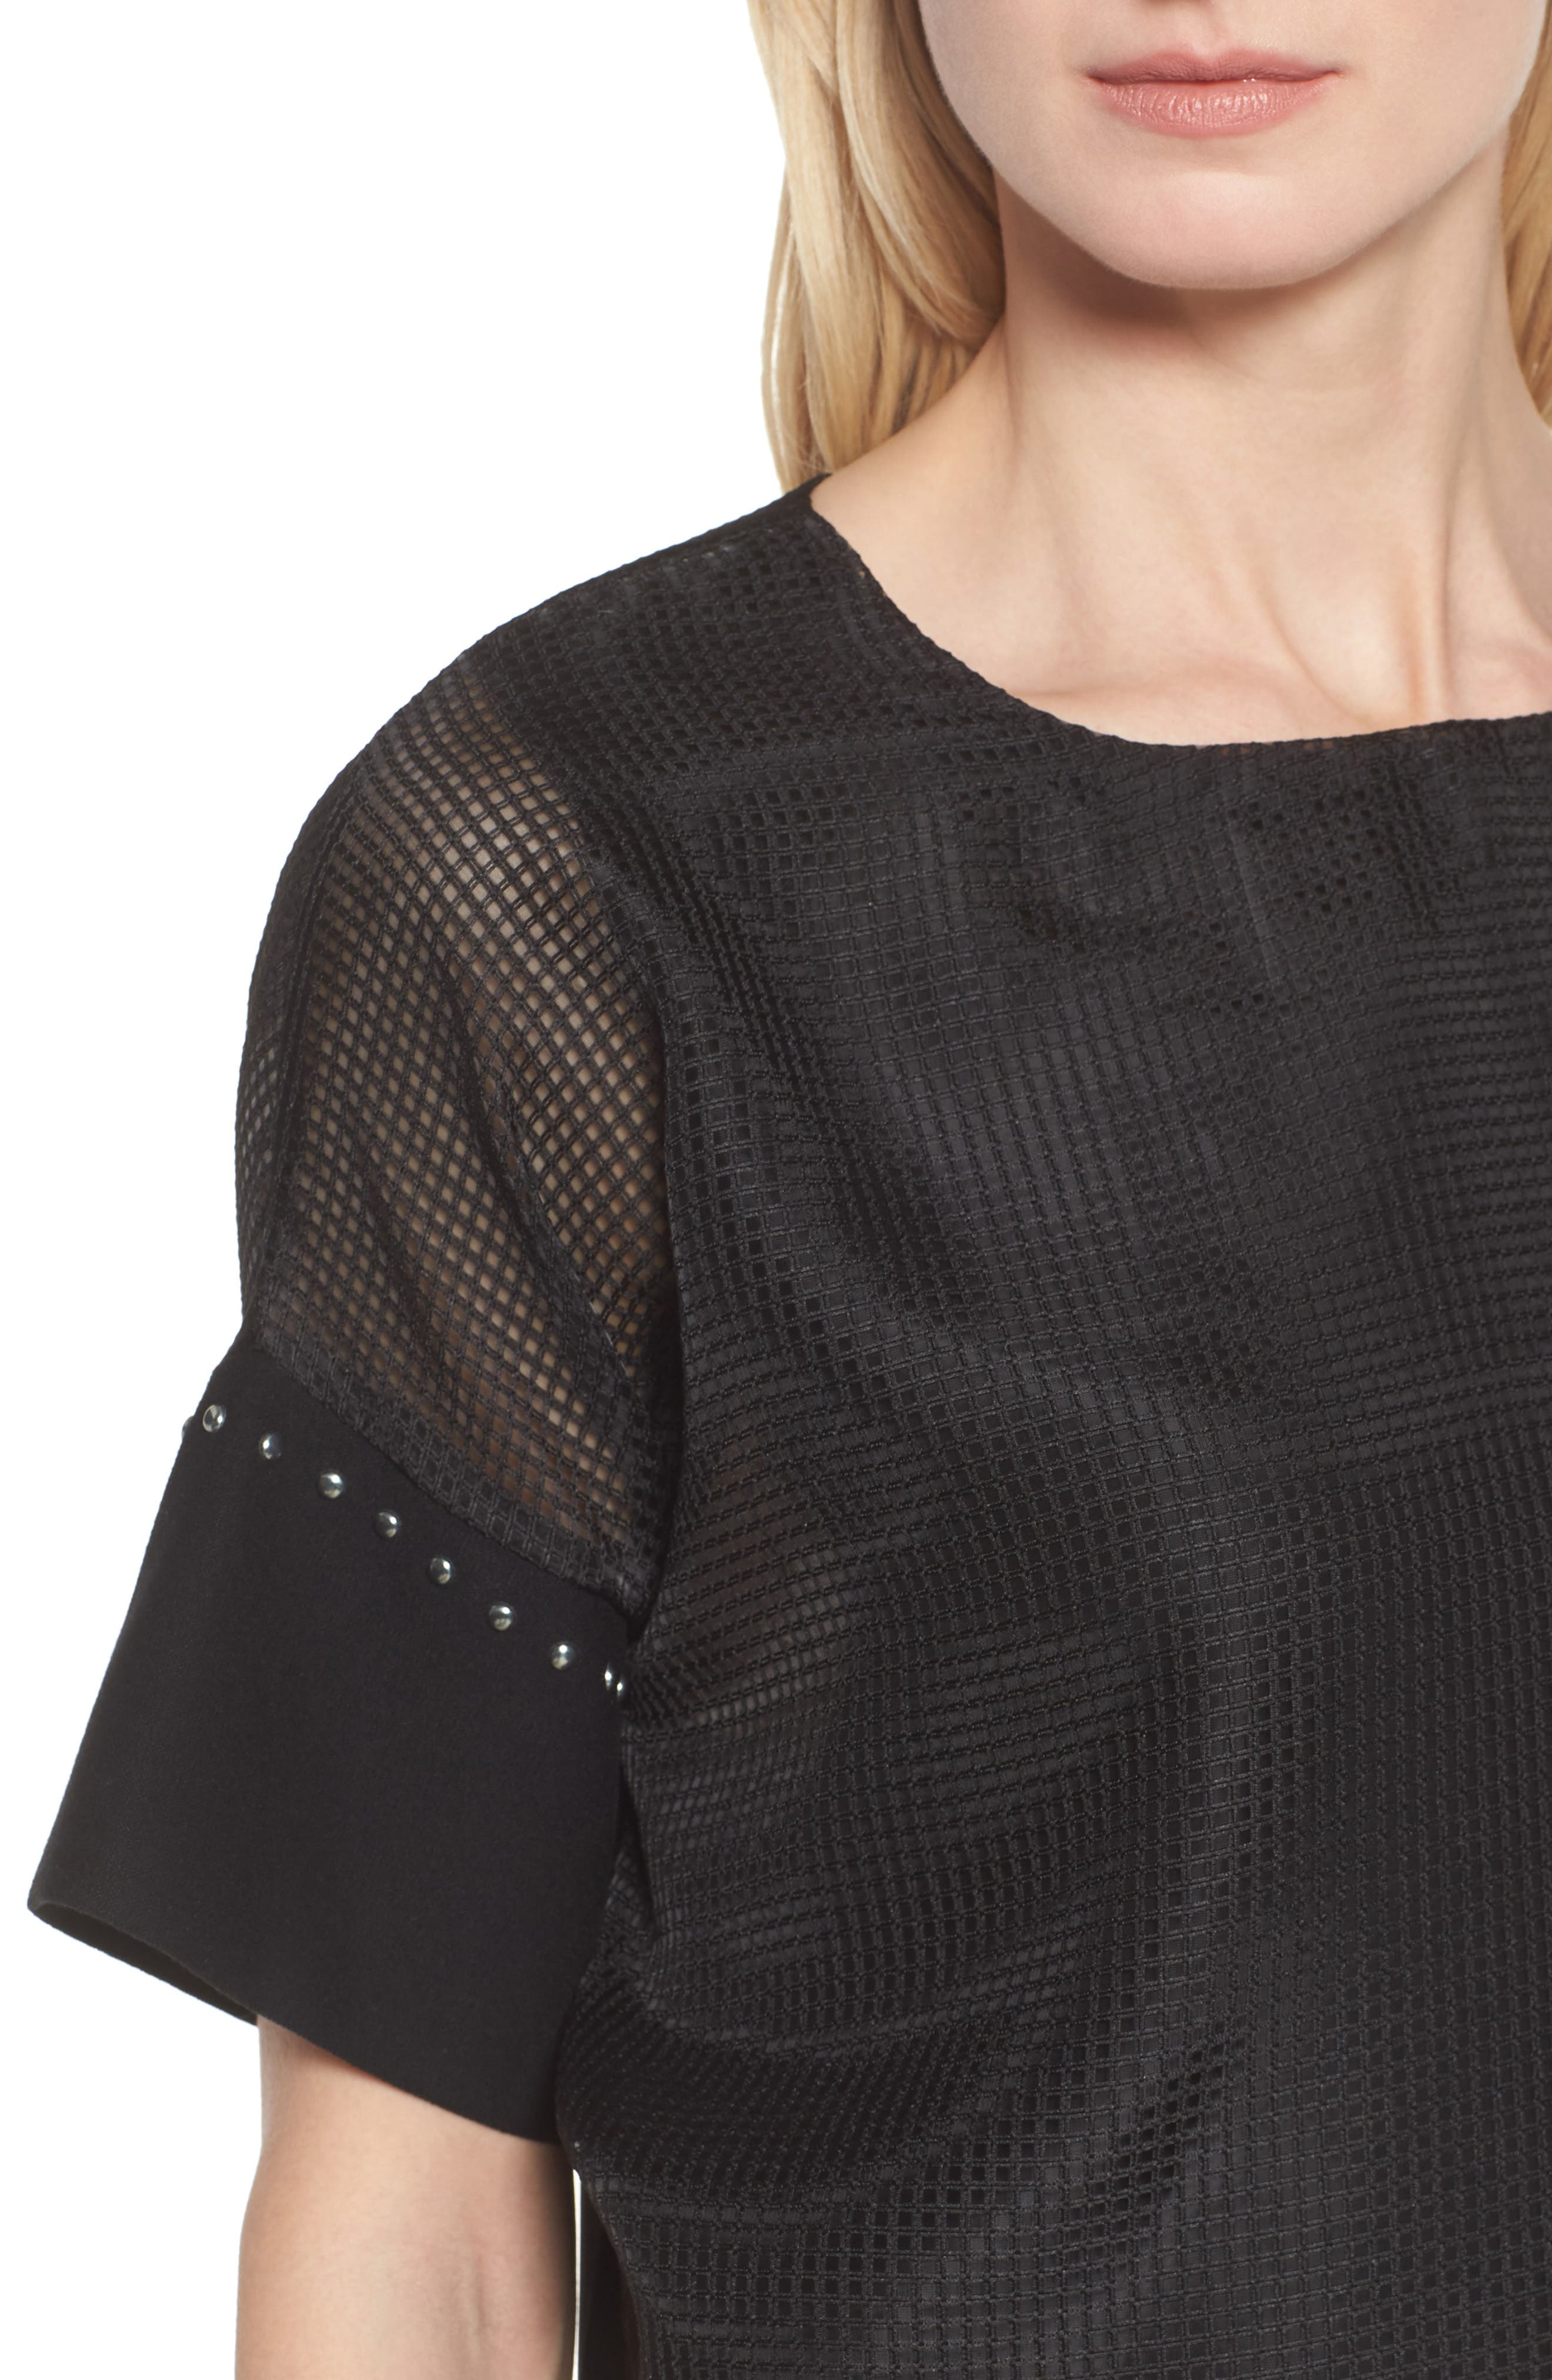 Mesh Layered Top,                             Alternate thumbnail 4, color,                             001